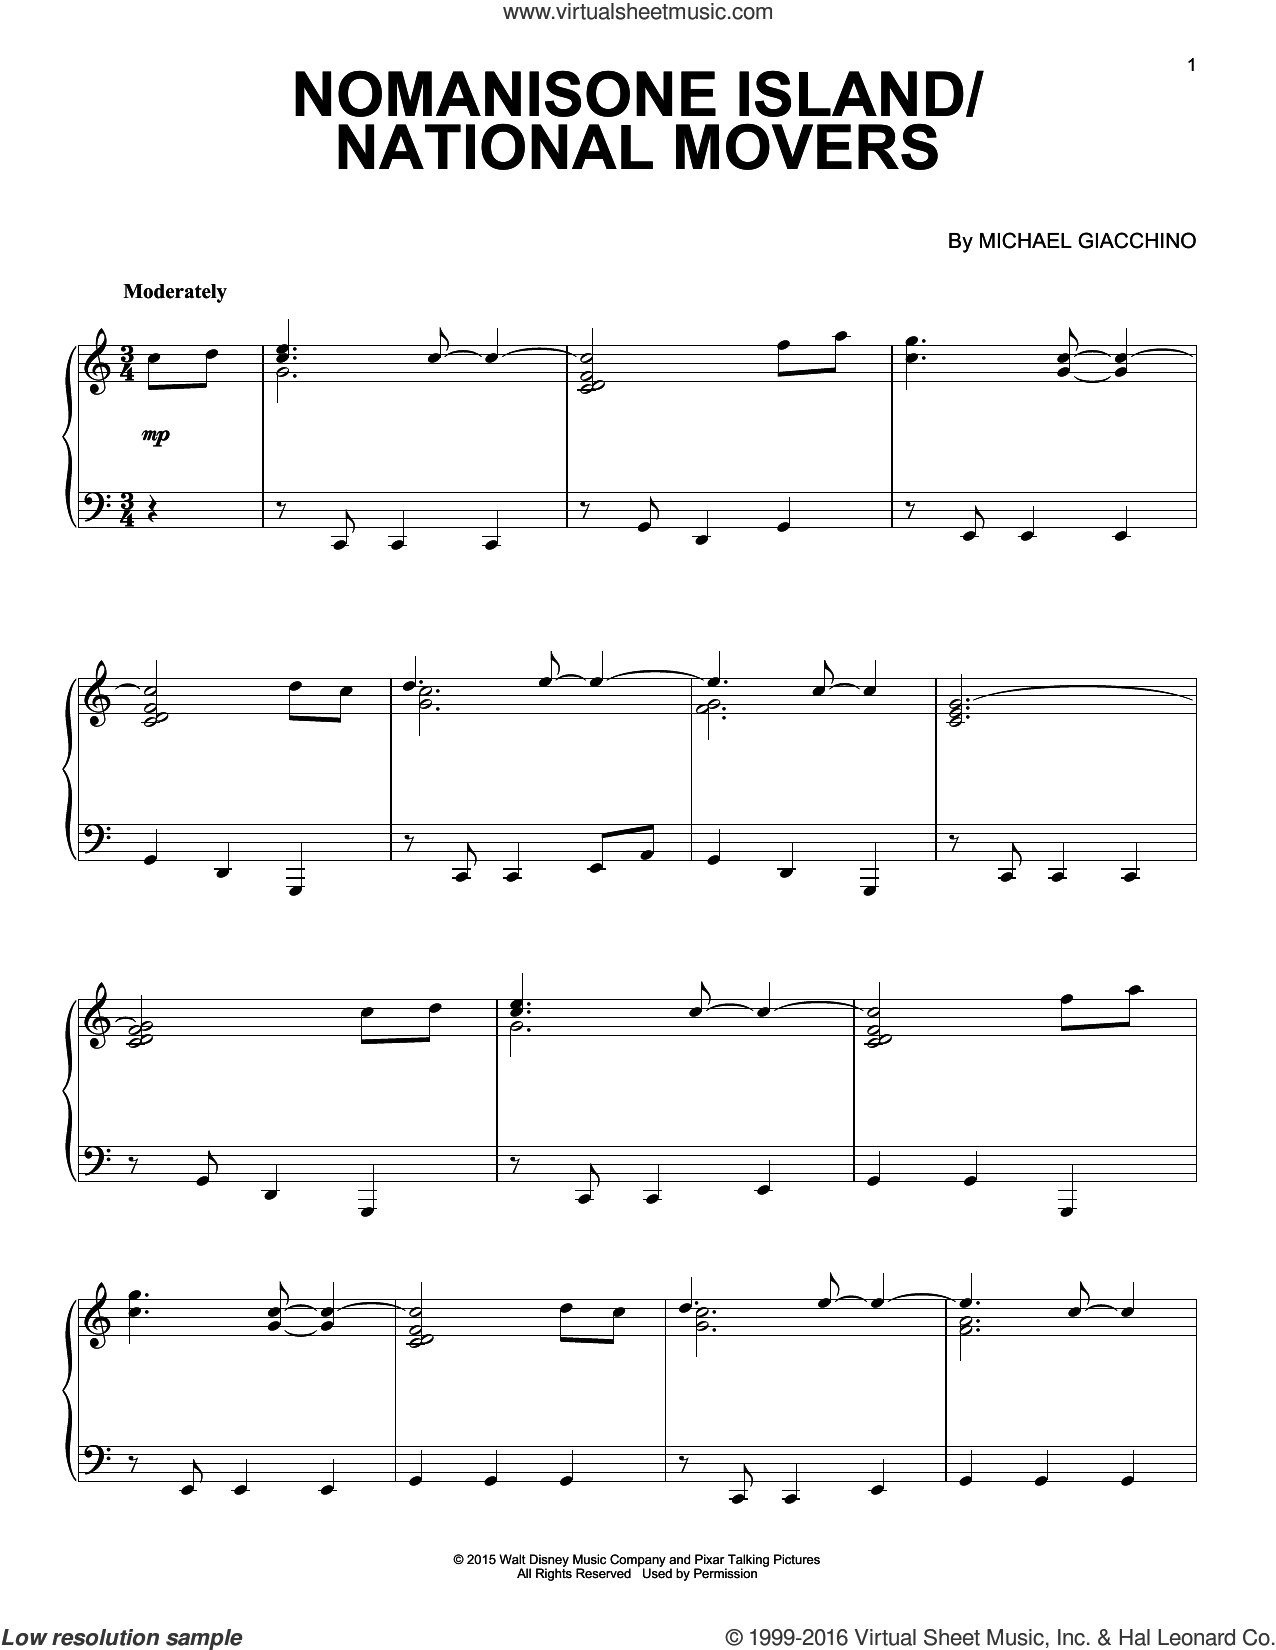 Nomanisone Island/National Movers sheet music for piano solo by Michael Giacchino. Score Image Preview.